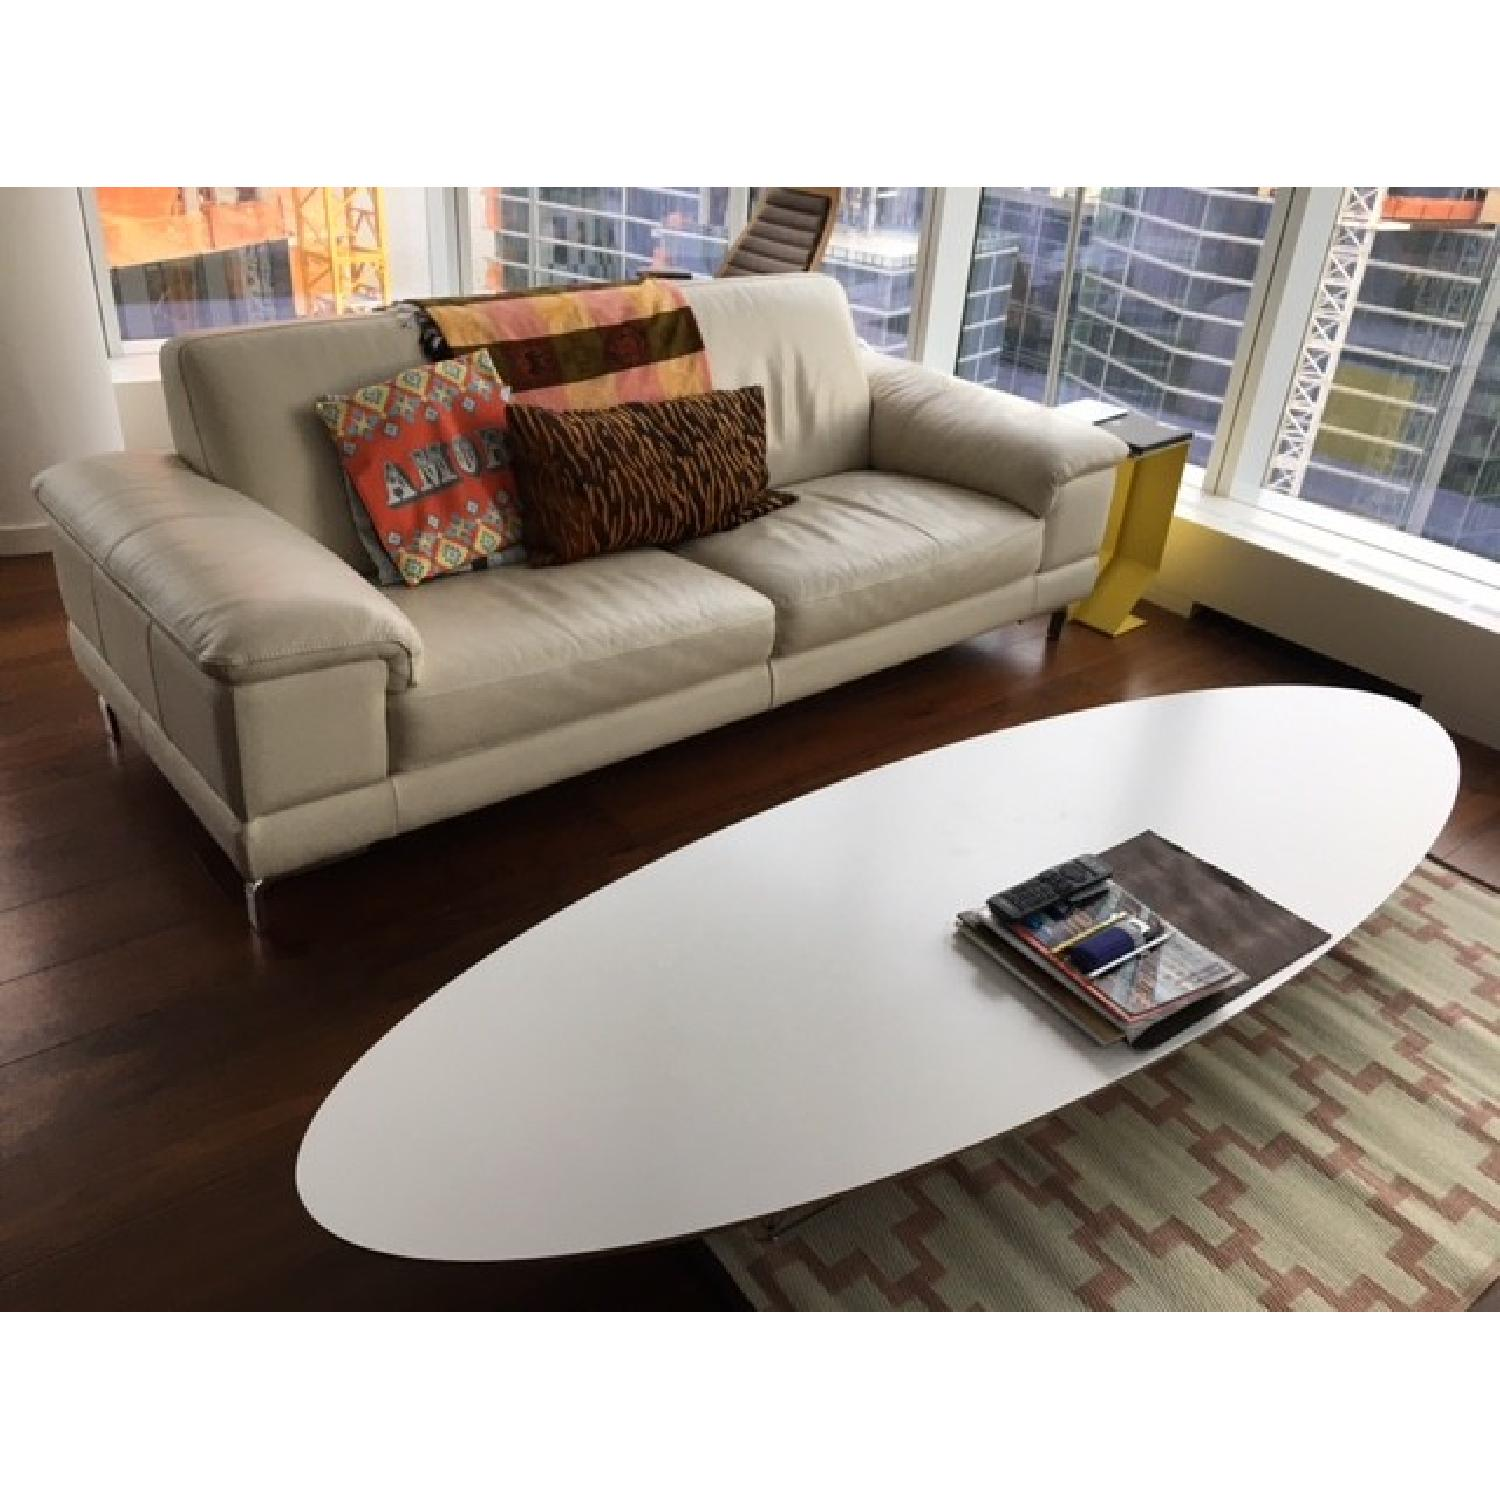 ... Eames Herman Miller Elliptical Table/Surfboard 0 ...